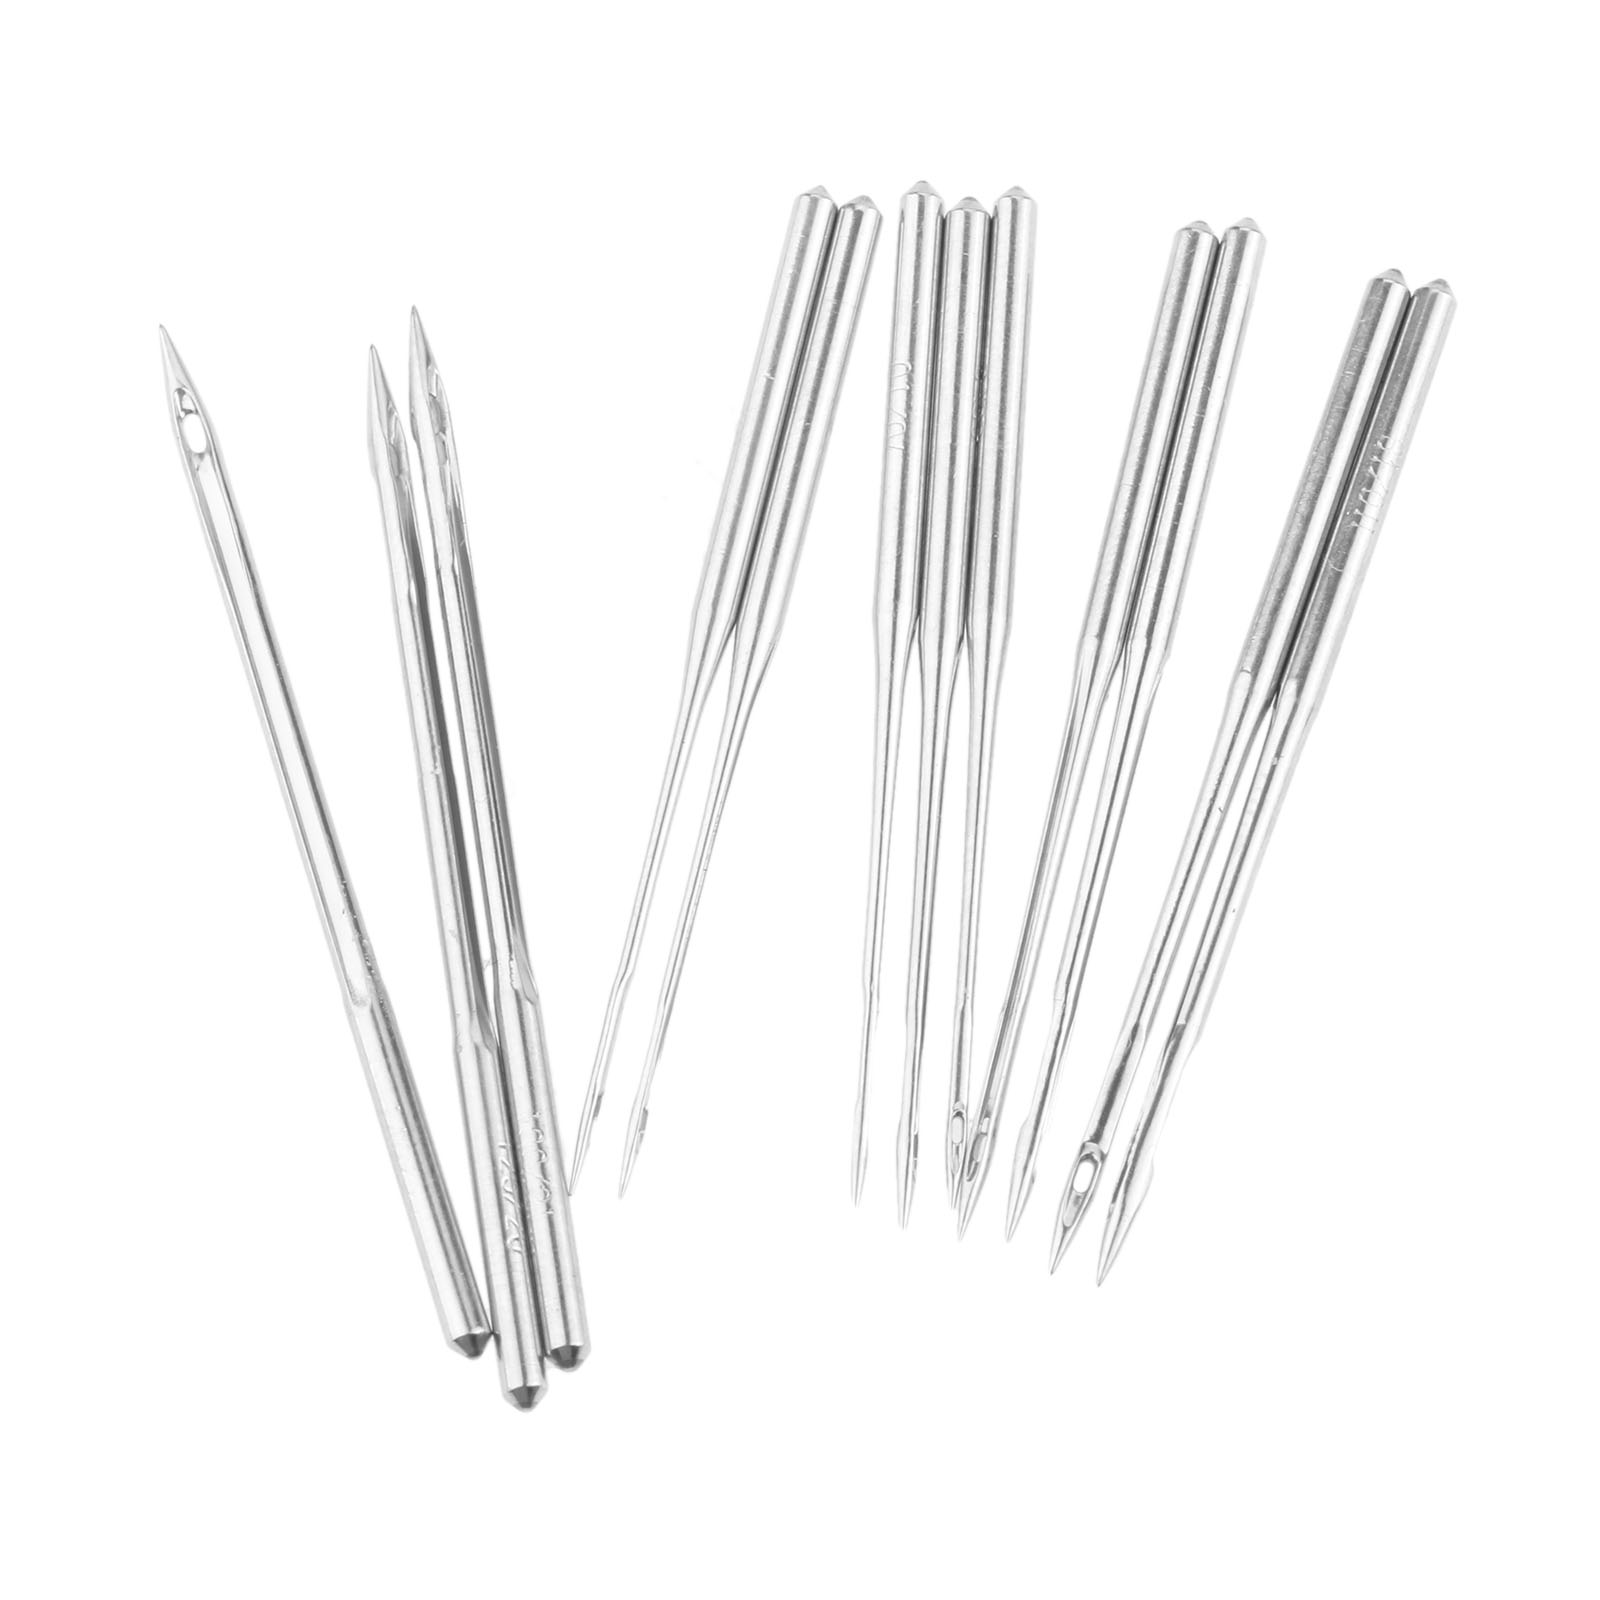 #21 10Pcs Industrial and Domestic Overlock Sewing Machine Needles for JUKI Brother Pegasus Sewing Needles,Size